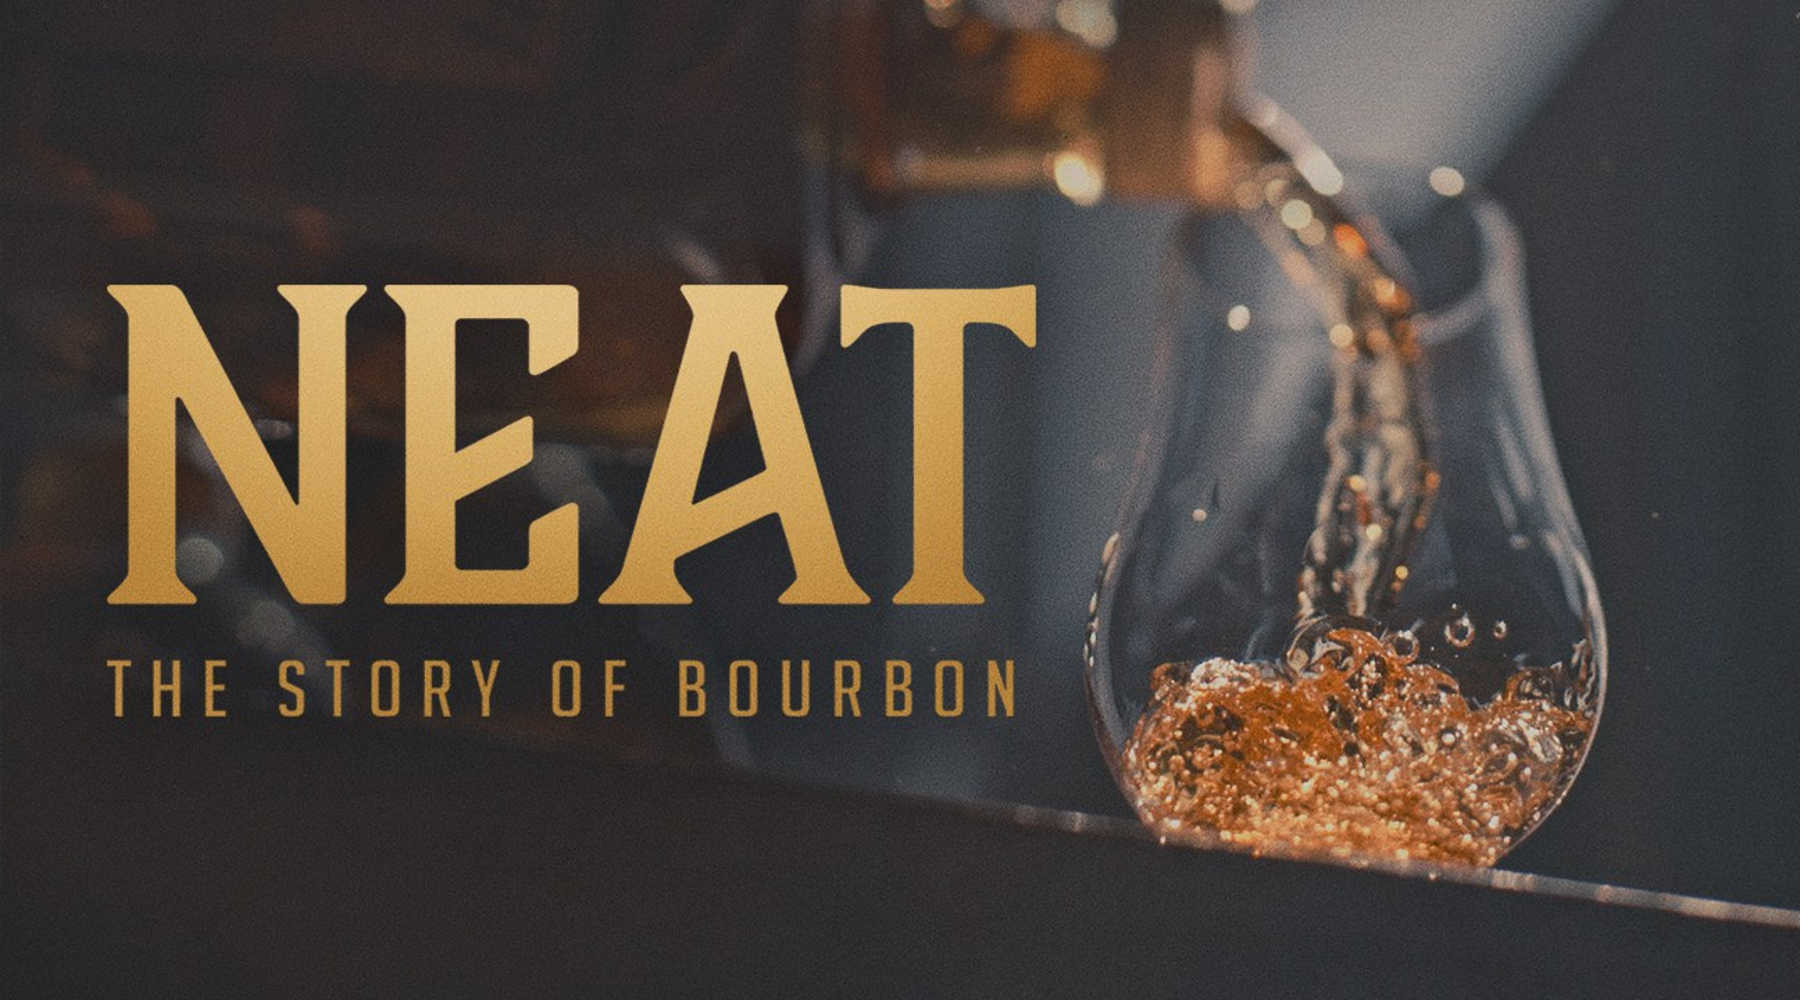 NEAT the story of bourbon documentary